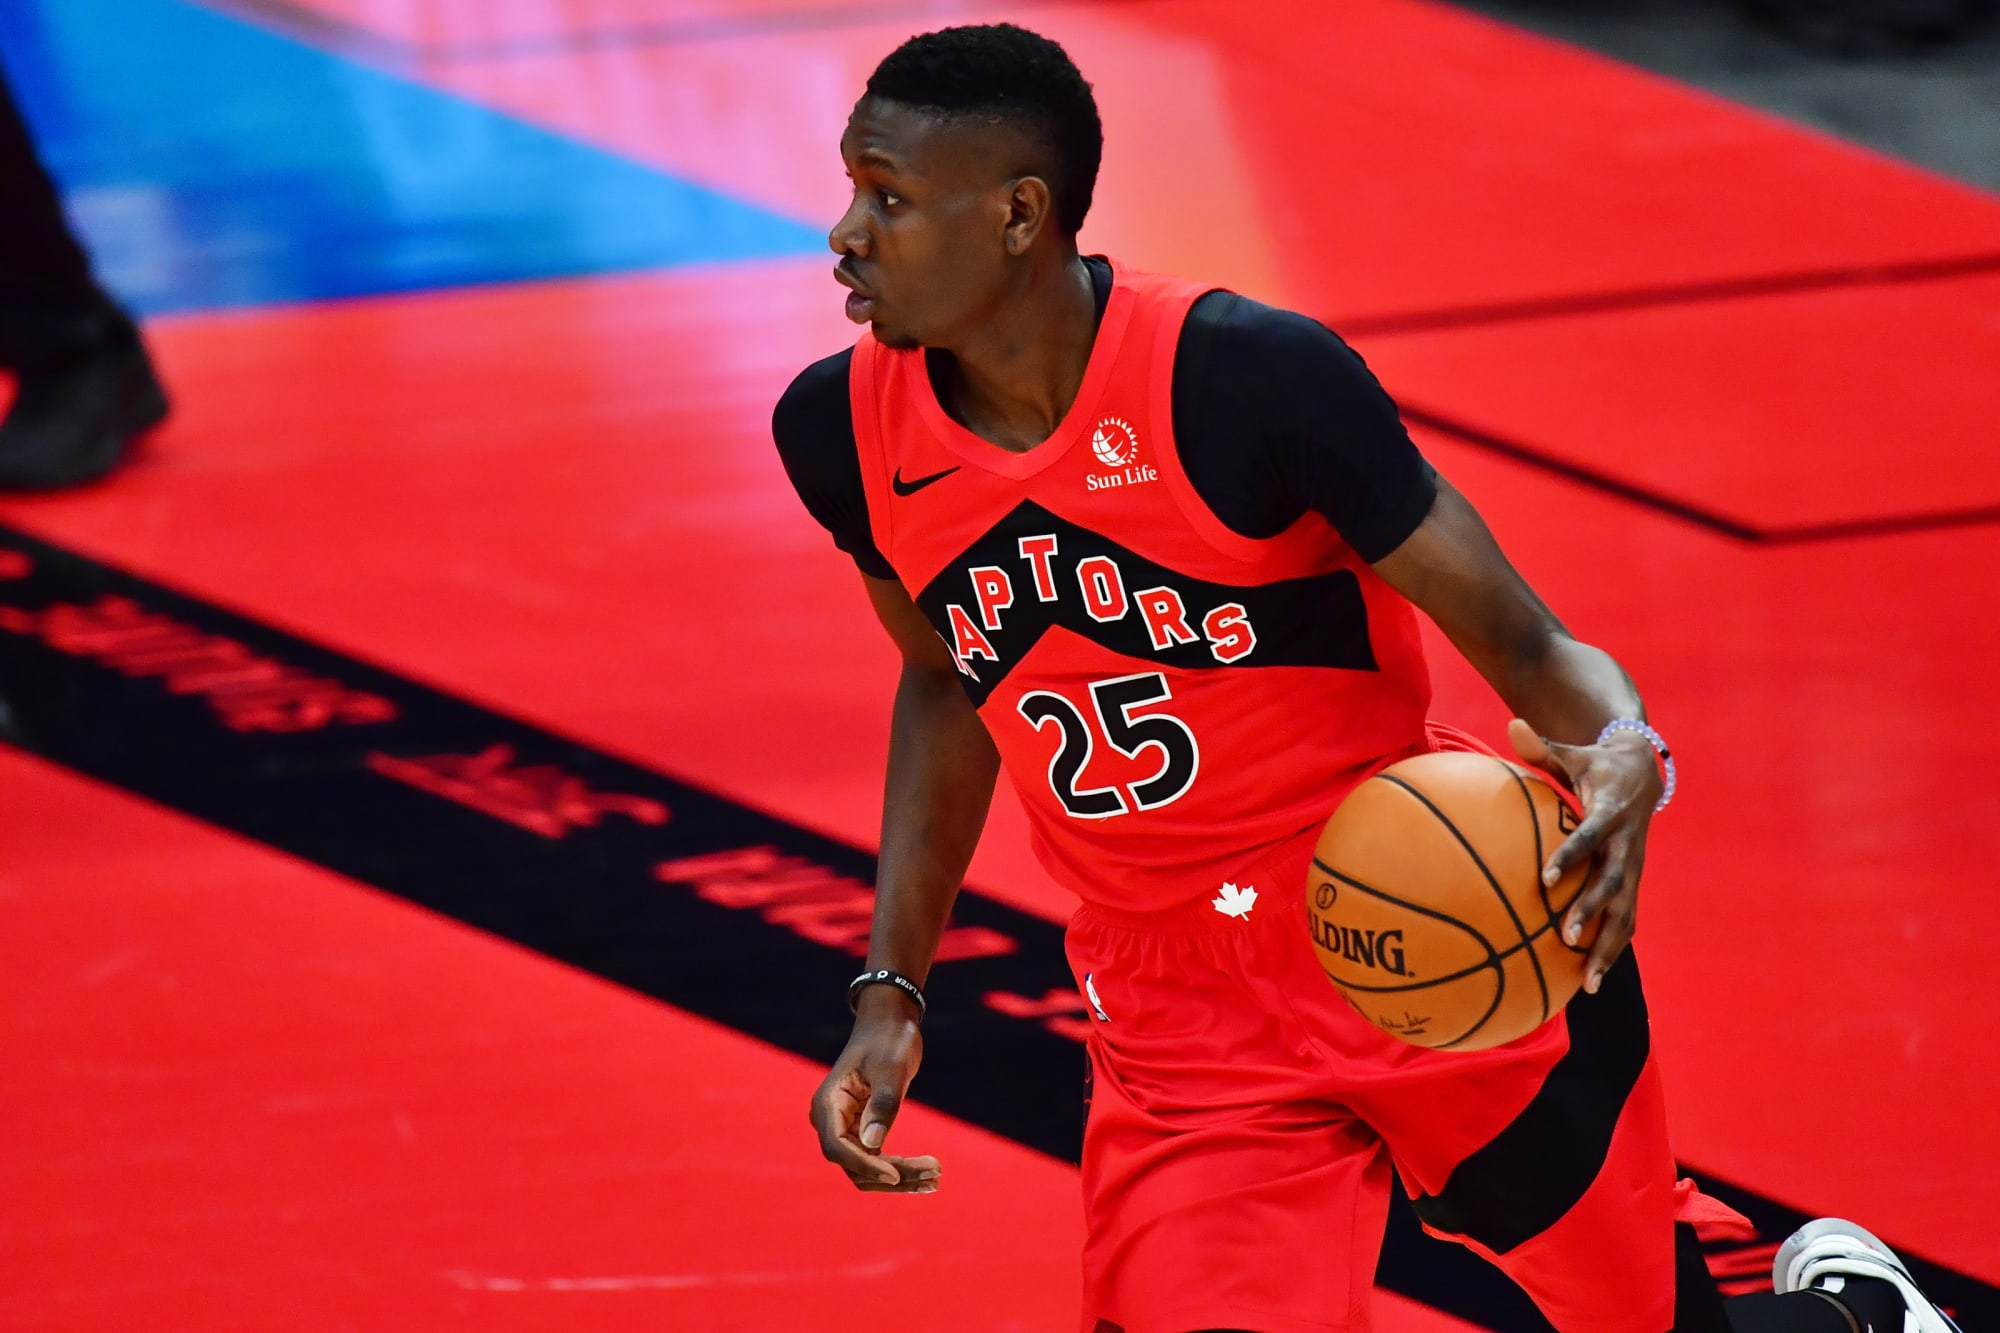 Raptors: Chris Boucher ranks among NBA's most valuable fourth-year players